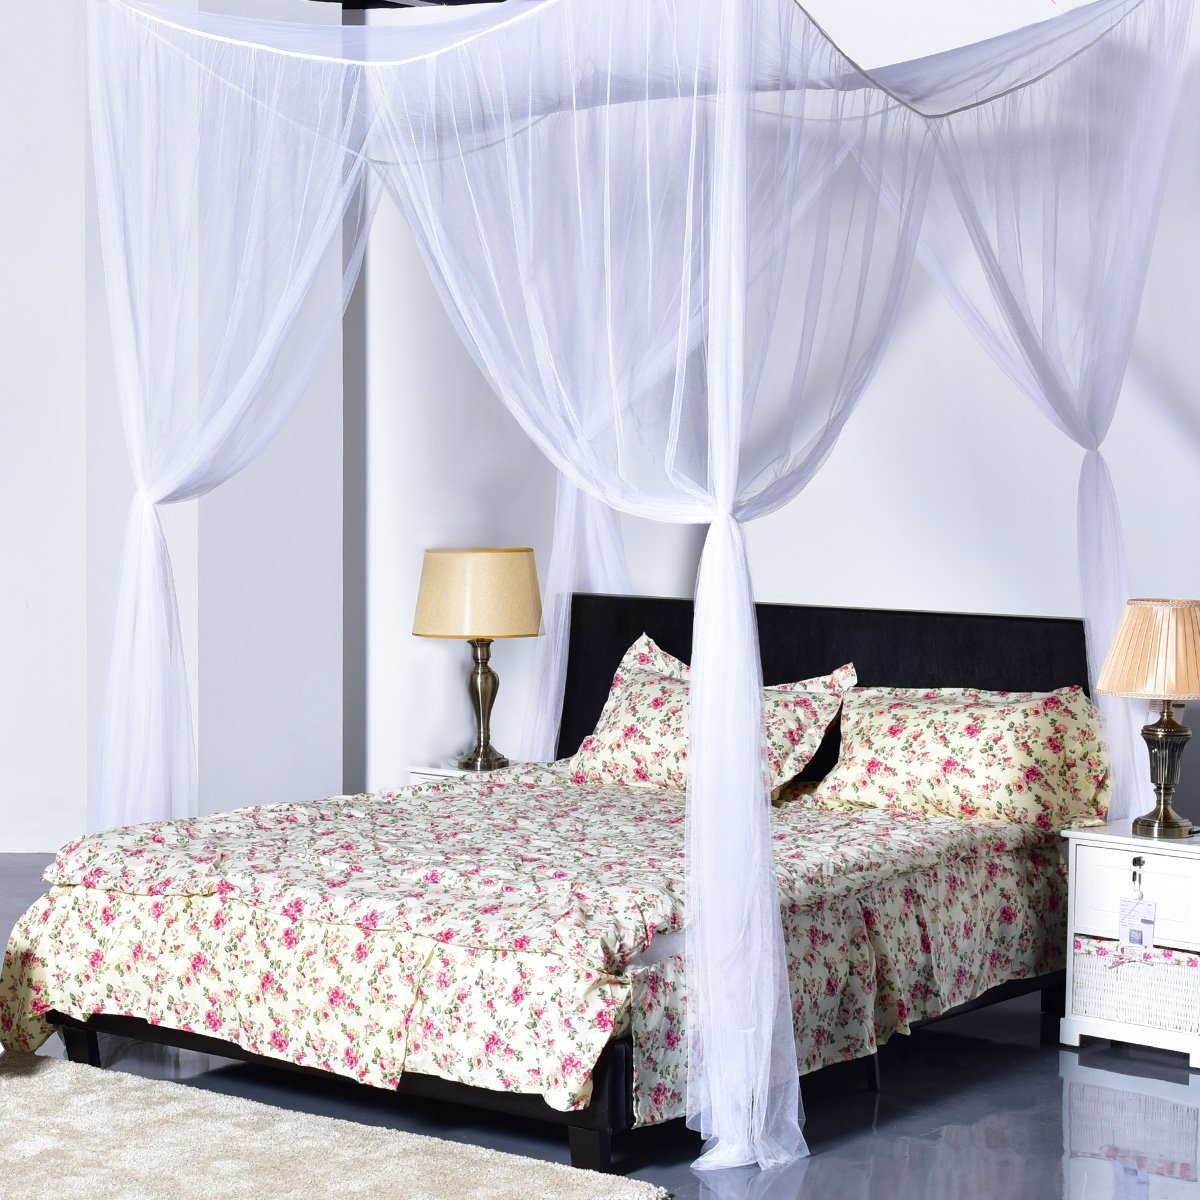 4 Corner Post Bed Canopy Mosquito Net Full Queen King Size Netting Bedding (White) & Canopy Curtains